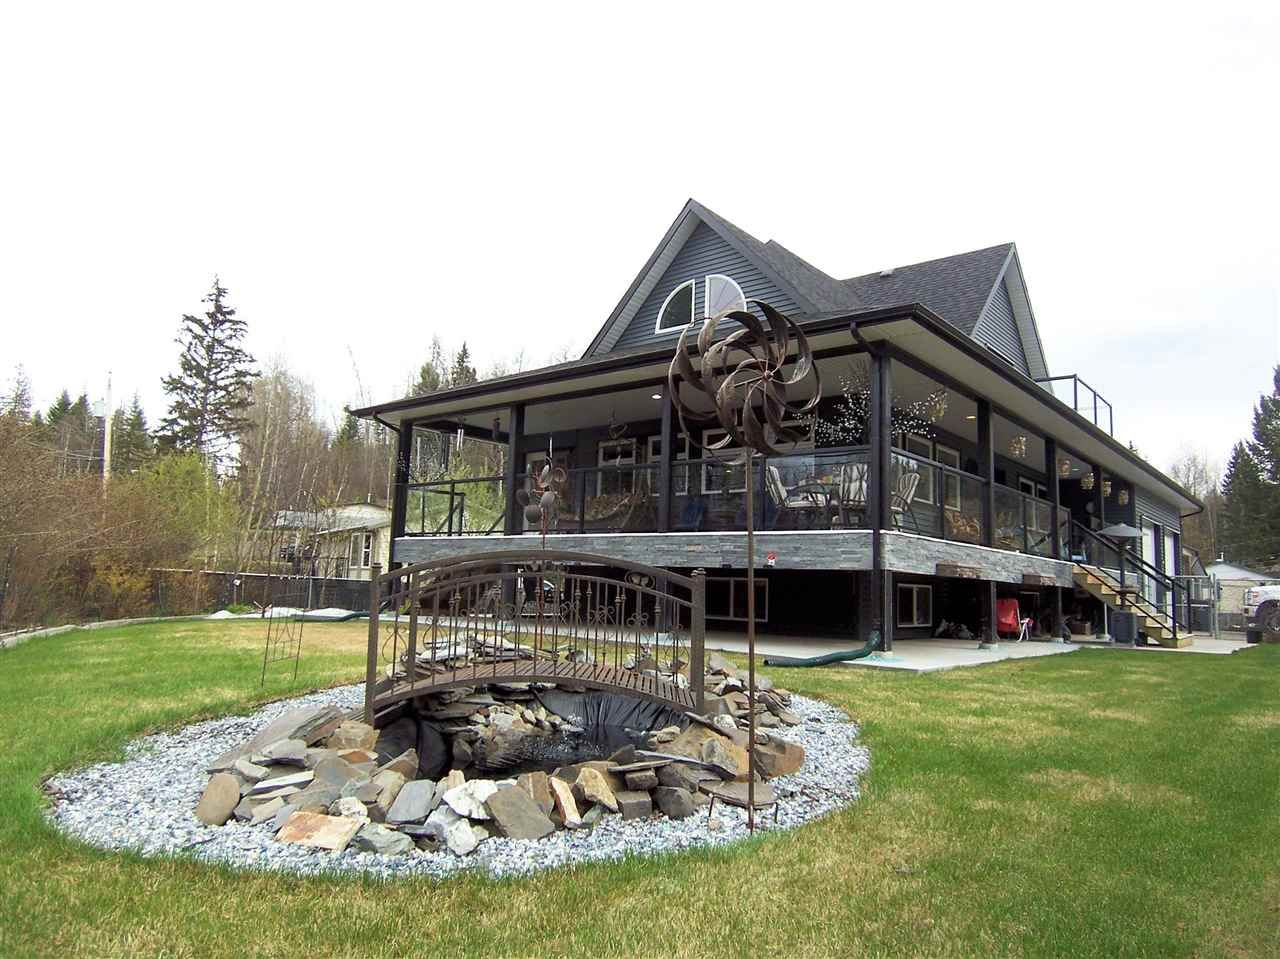 """Main Photo: 1940 AINTREE Drive in Prince George: Aberdeen House for sale in """"ABERDEEN"""" (PG City North (Zone 73))  : MLS®# R2058556"""